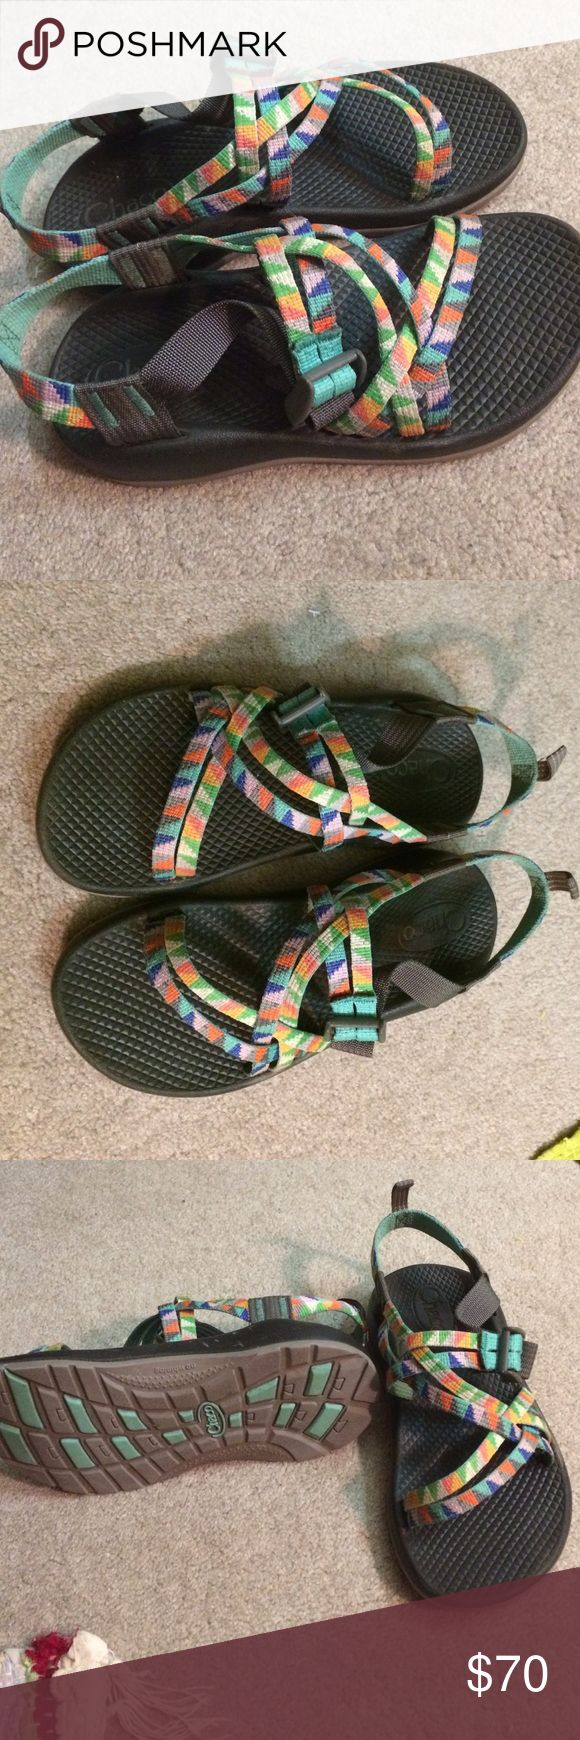 Women's Chaco sandals size 7! Only wore a couple times. Super comfy. Willing to bargain. Chacos Shoes Sandals